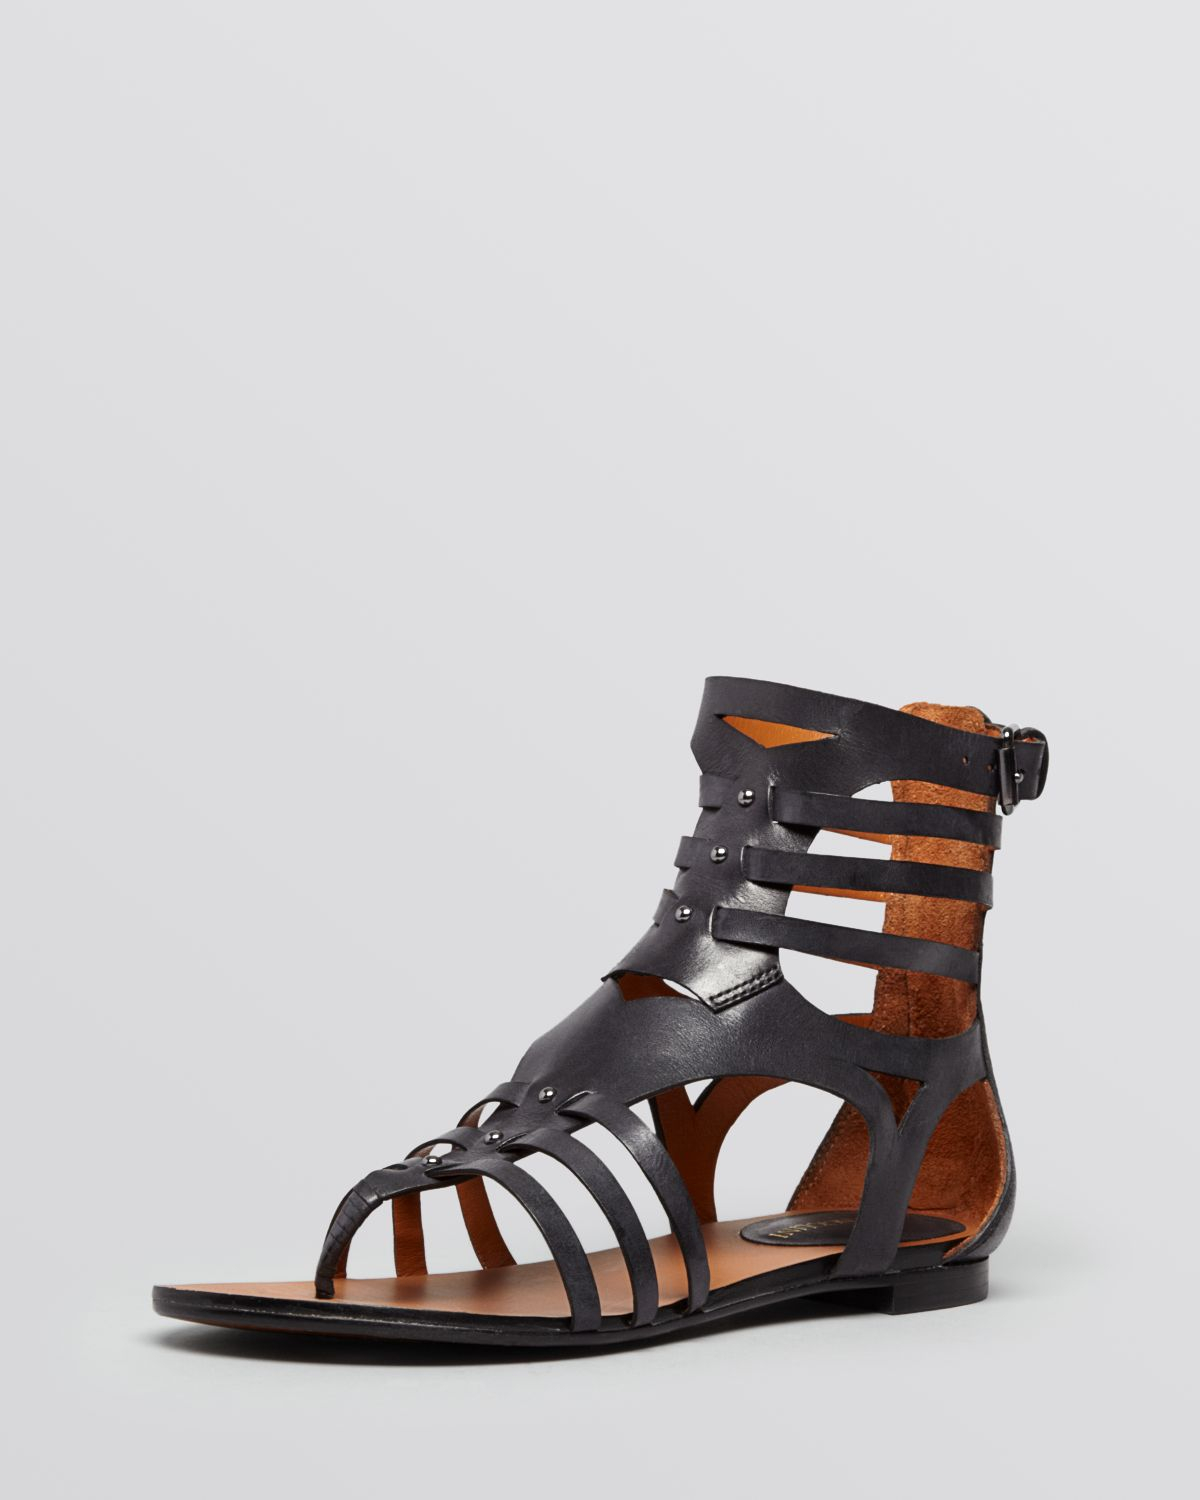 3c26c63db5b Gallery. Previously sold at  Bloomingdale s · Women s Gladiator Sandals ...